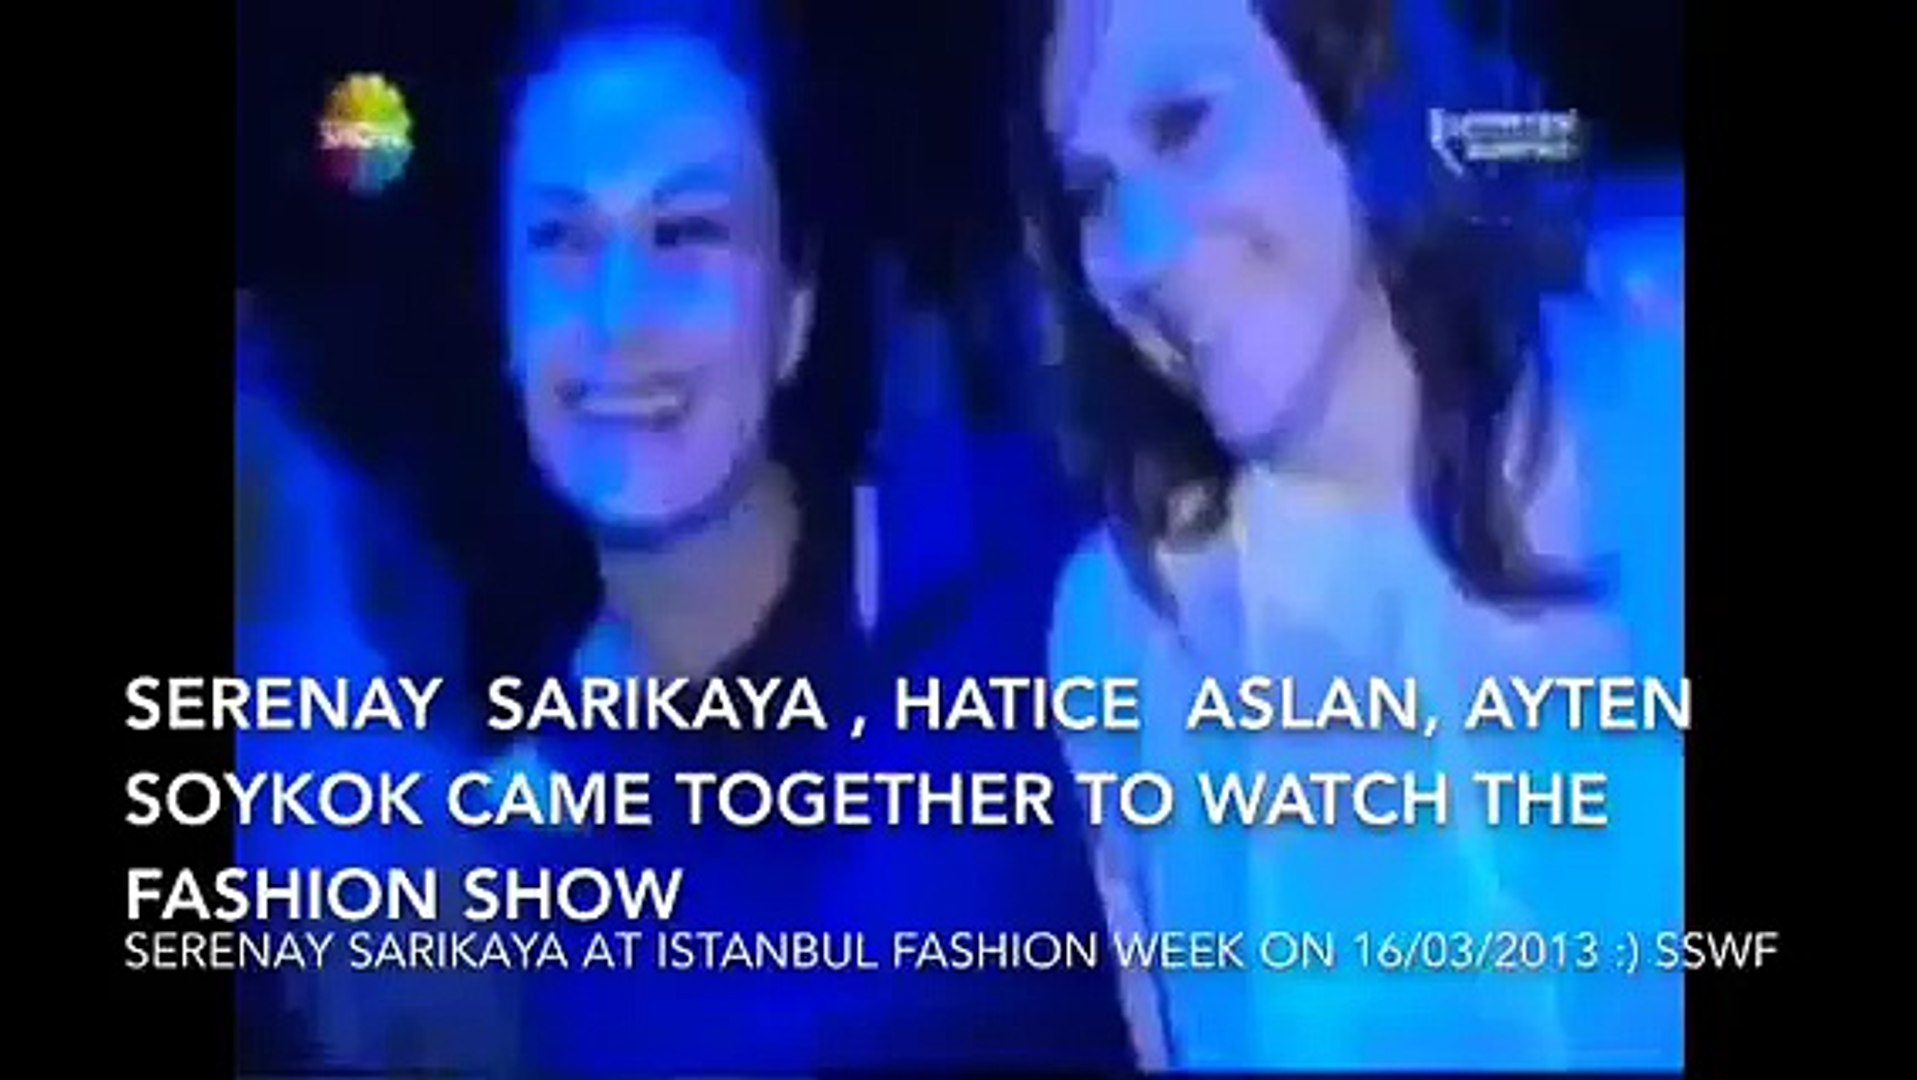 Serenay Sarikaya at Istanbul fashion week 2013